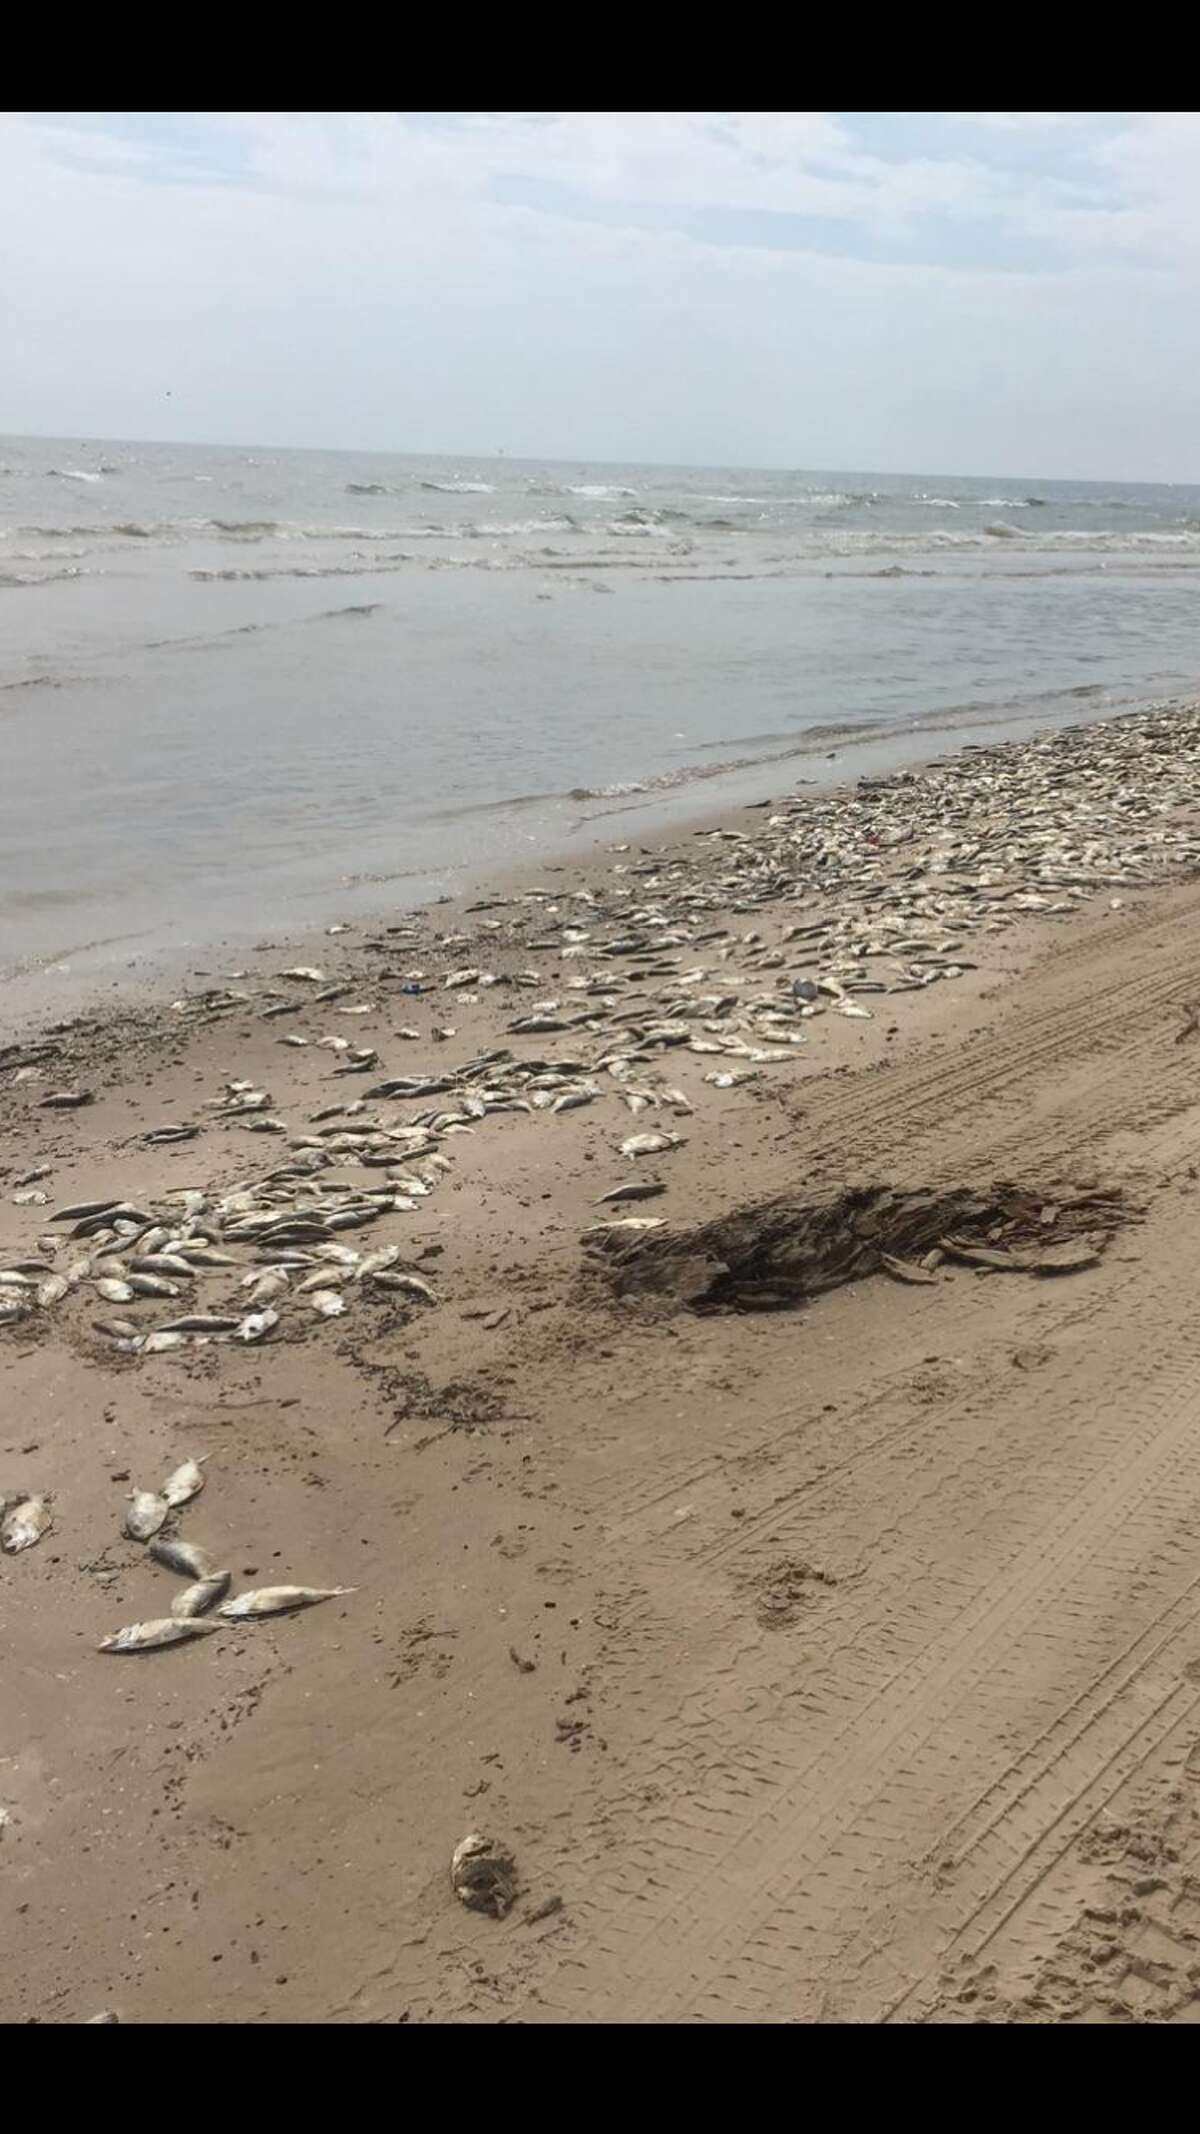 Thousands of fish washed up dead at Bryan Beach in Freeport after a suspected red tide event.